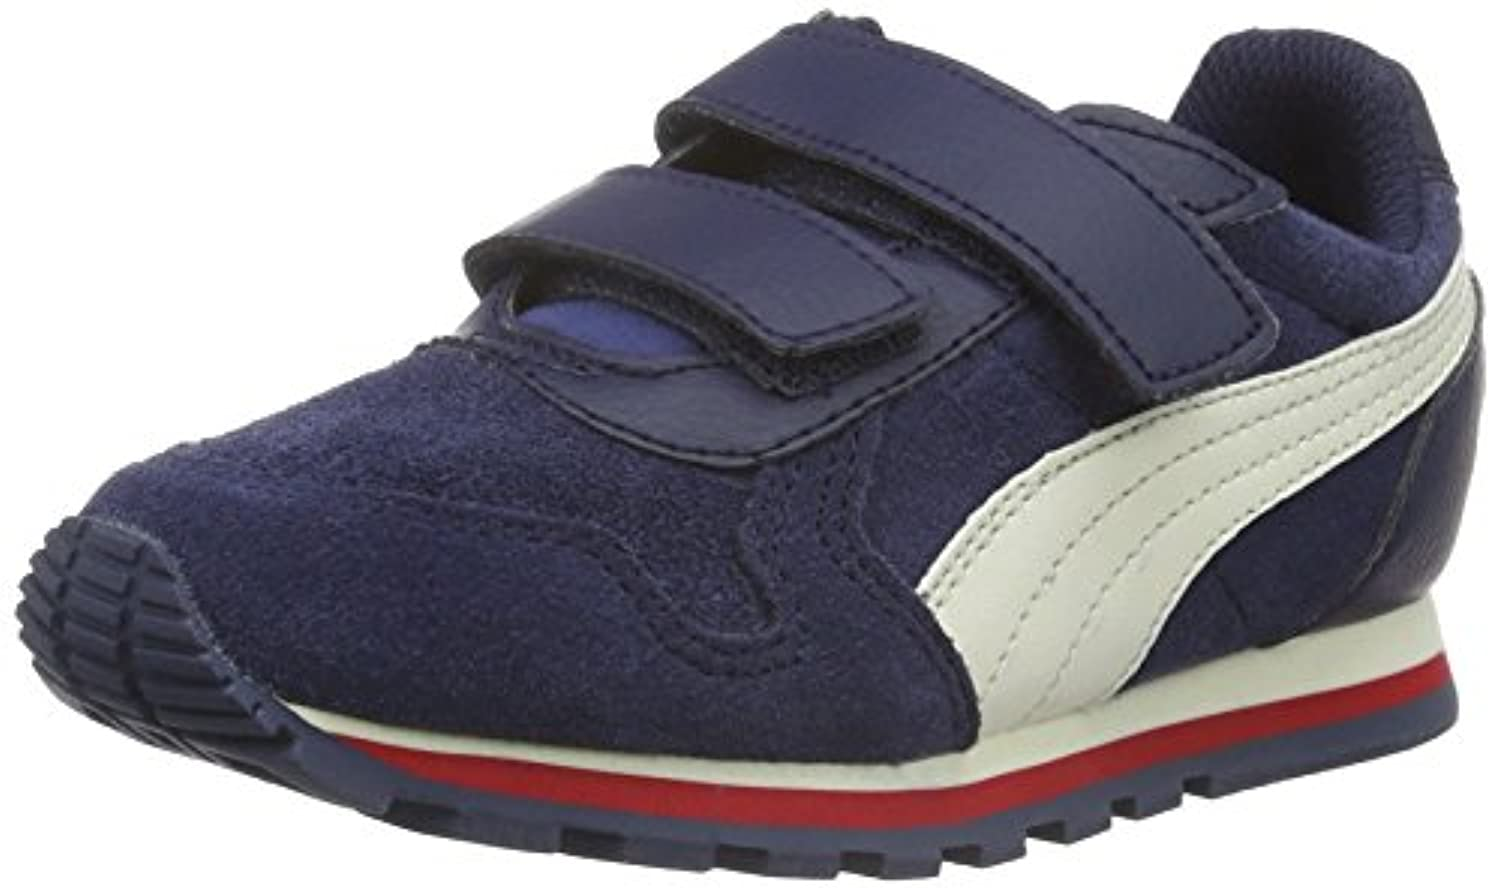 Puma Unisex Kids' ST Runner SD V PS Low-Top Sneakers Red Size: 1